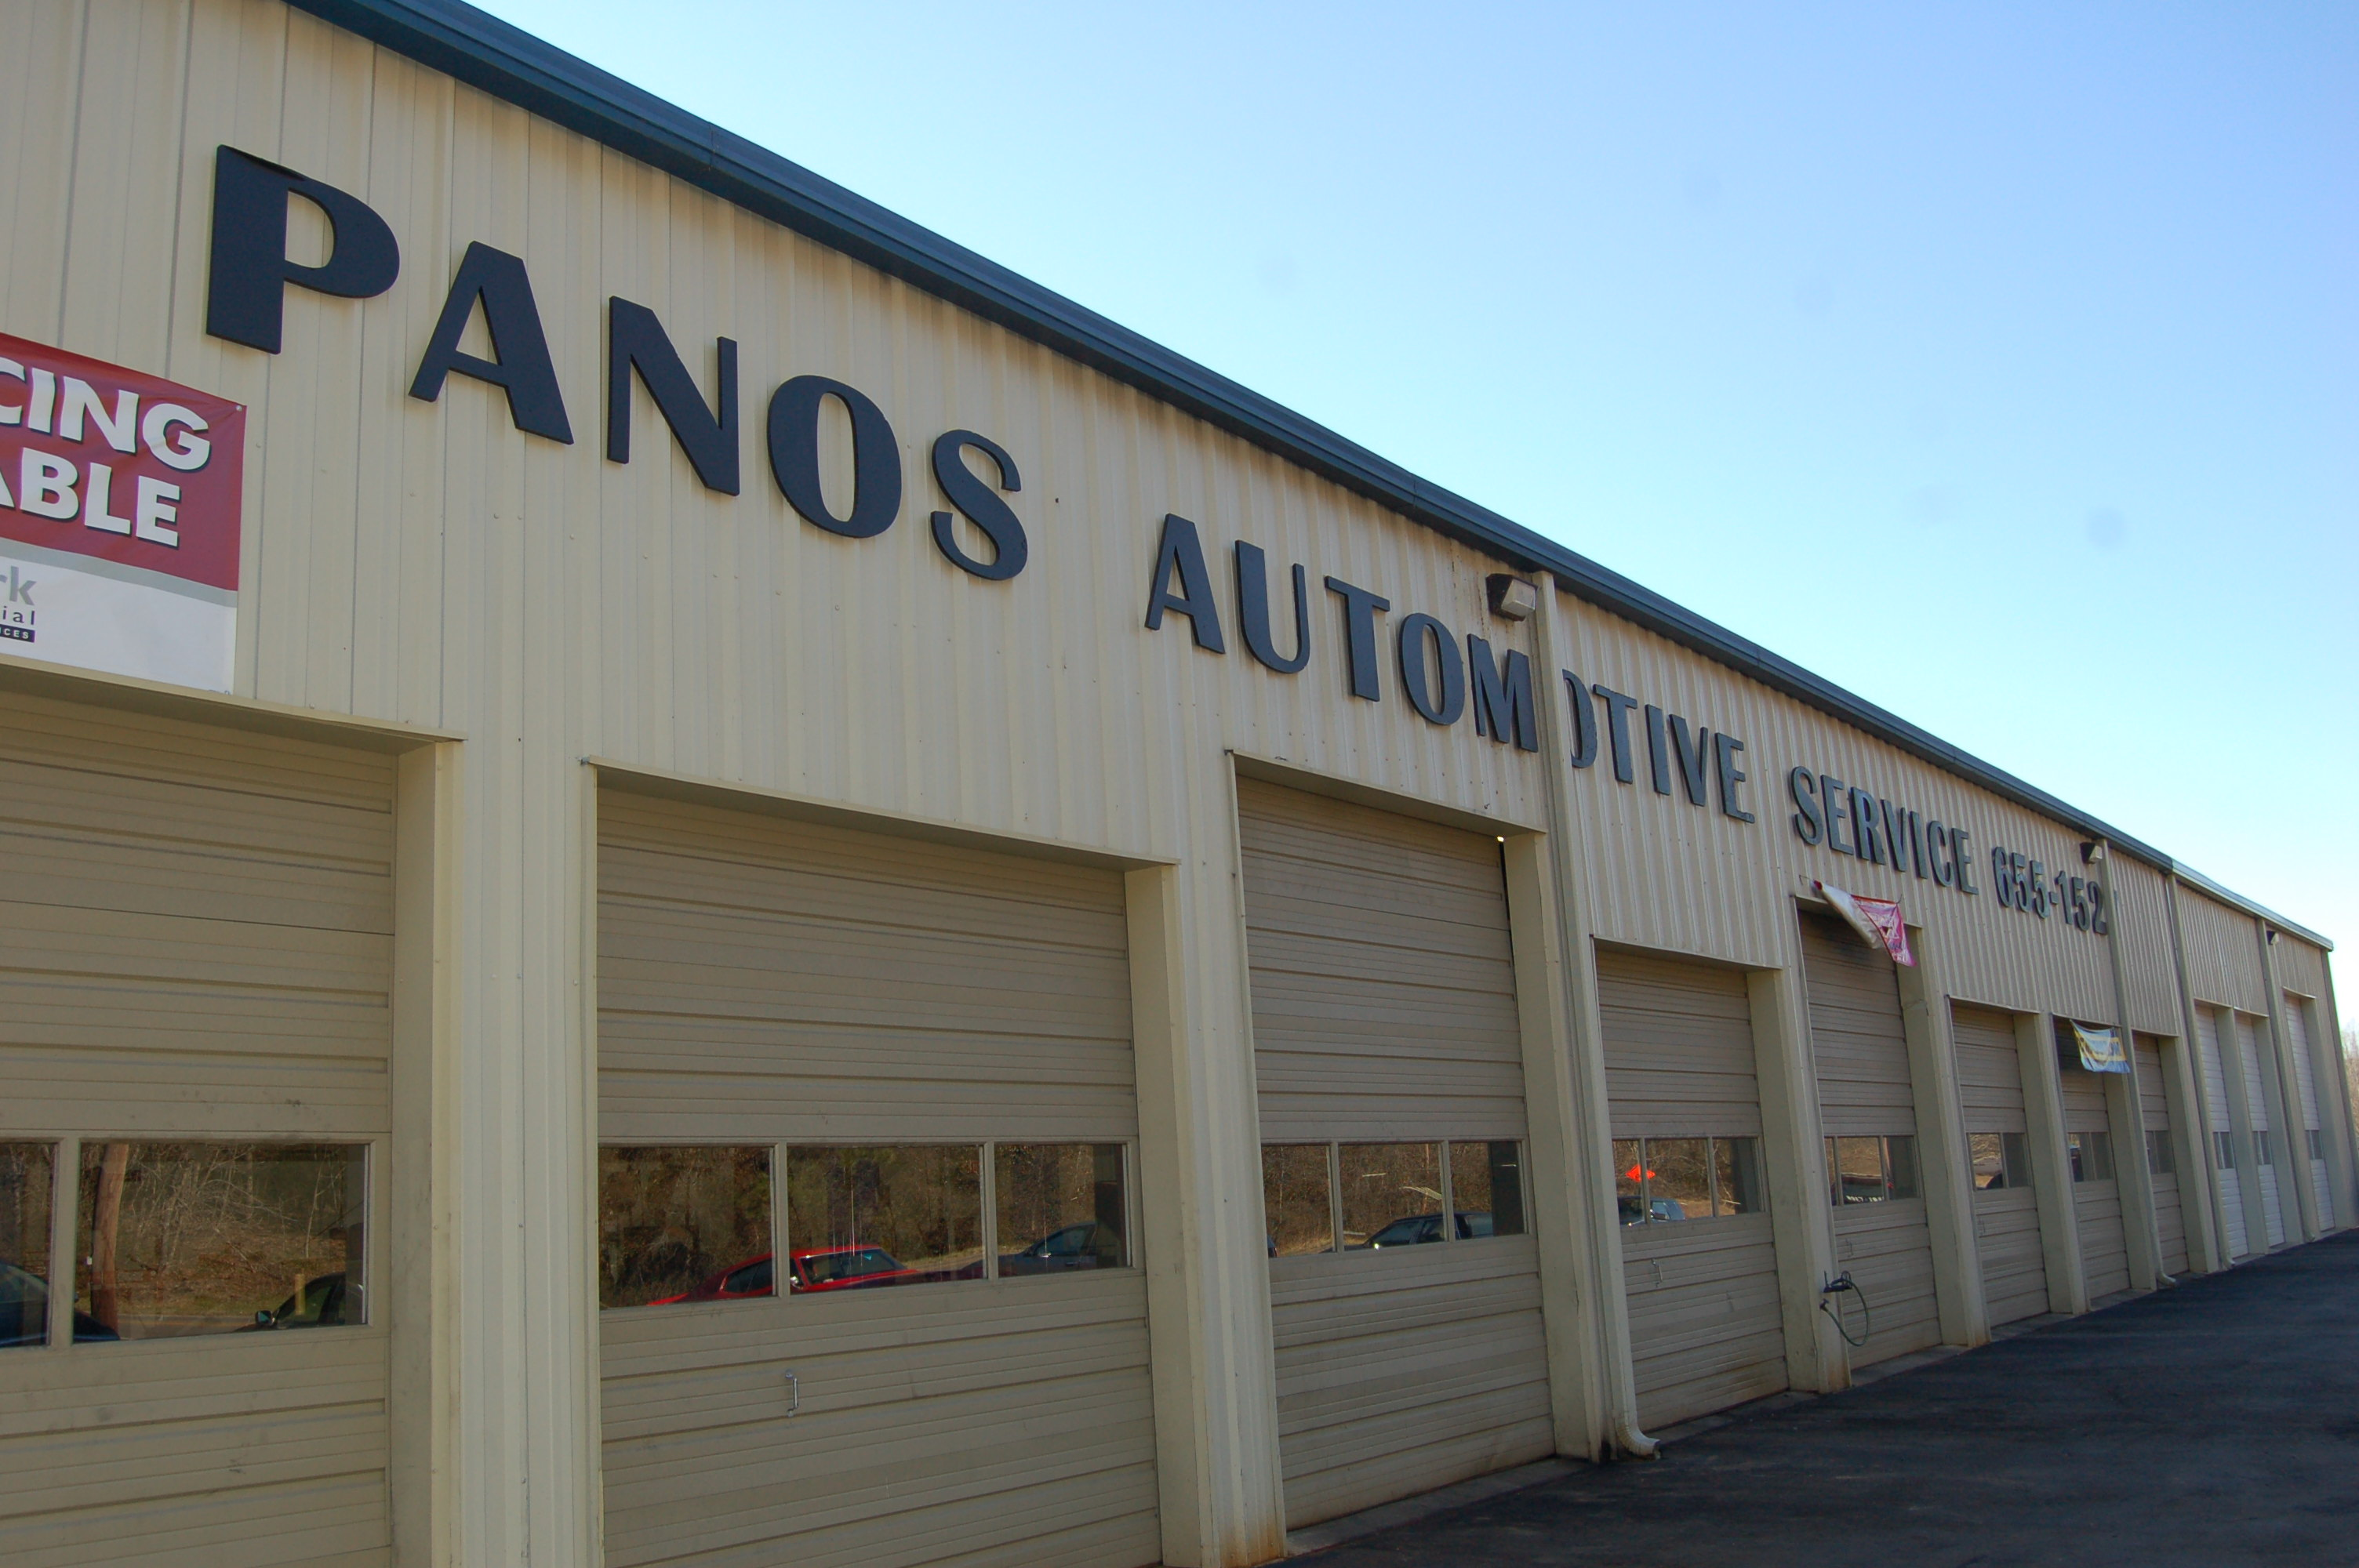 Panos Automotive: Family friendly service for a family friendly community